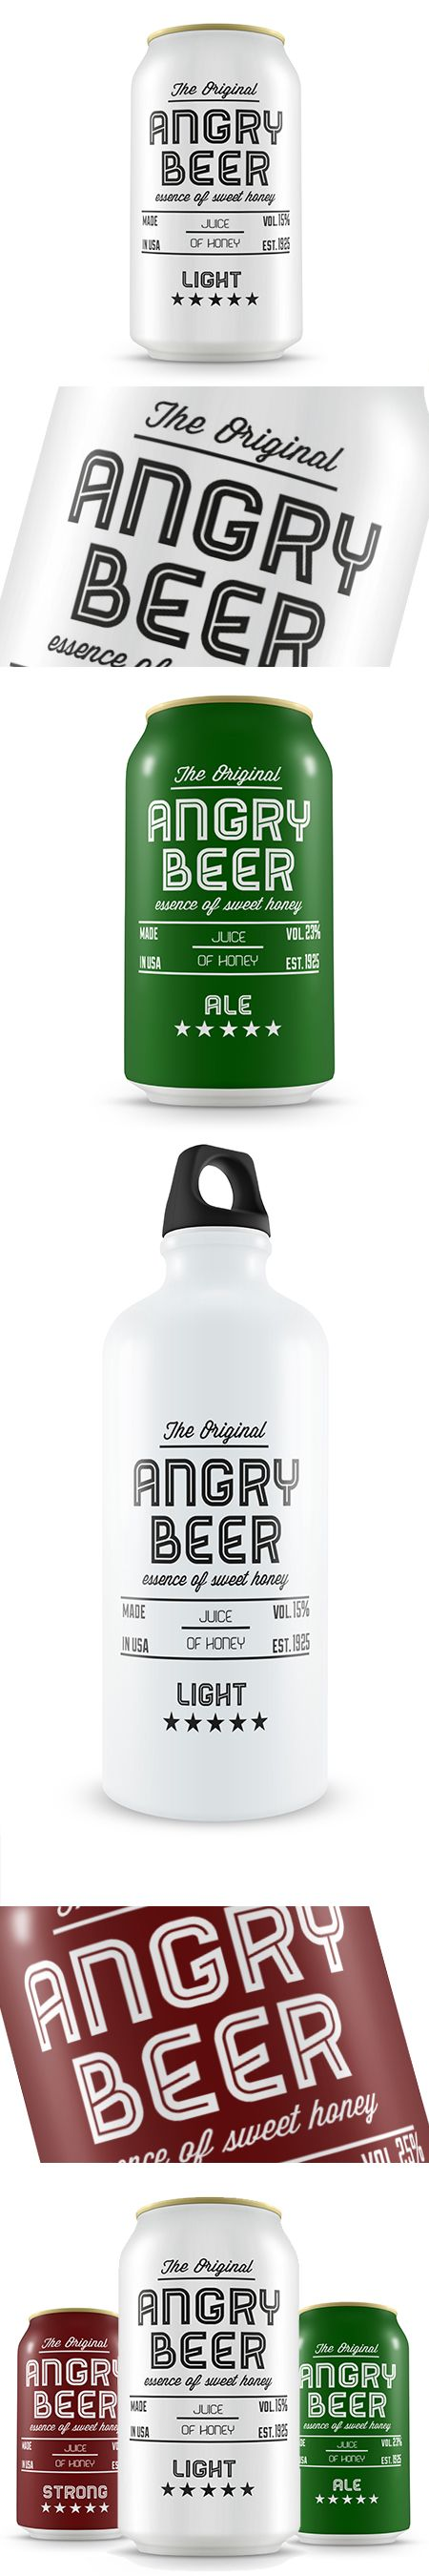 Angry Beer by Raffaele Cirillo. Looking at cans again, white background makes typography pop. Lovely sophisticated design.